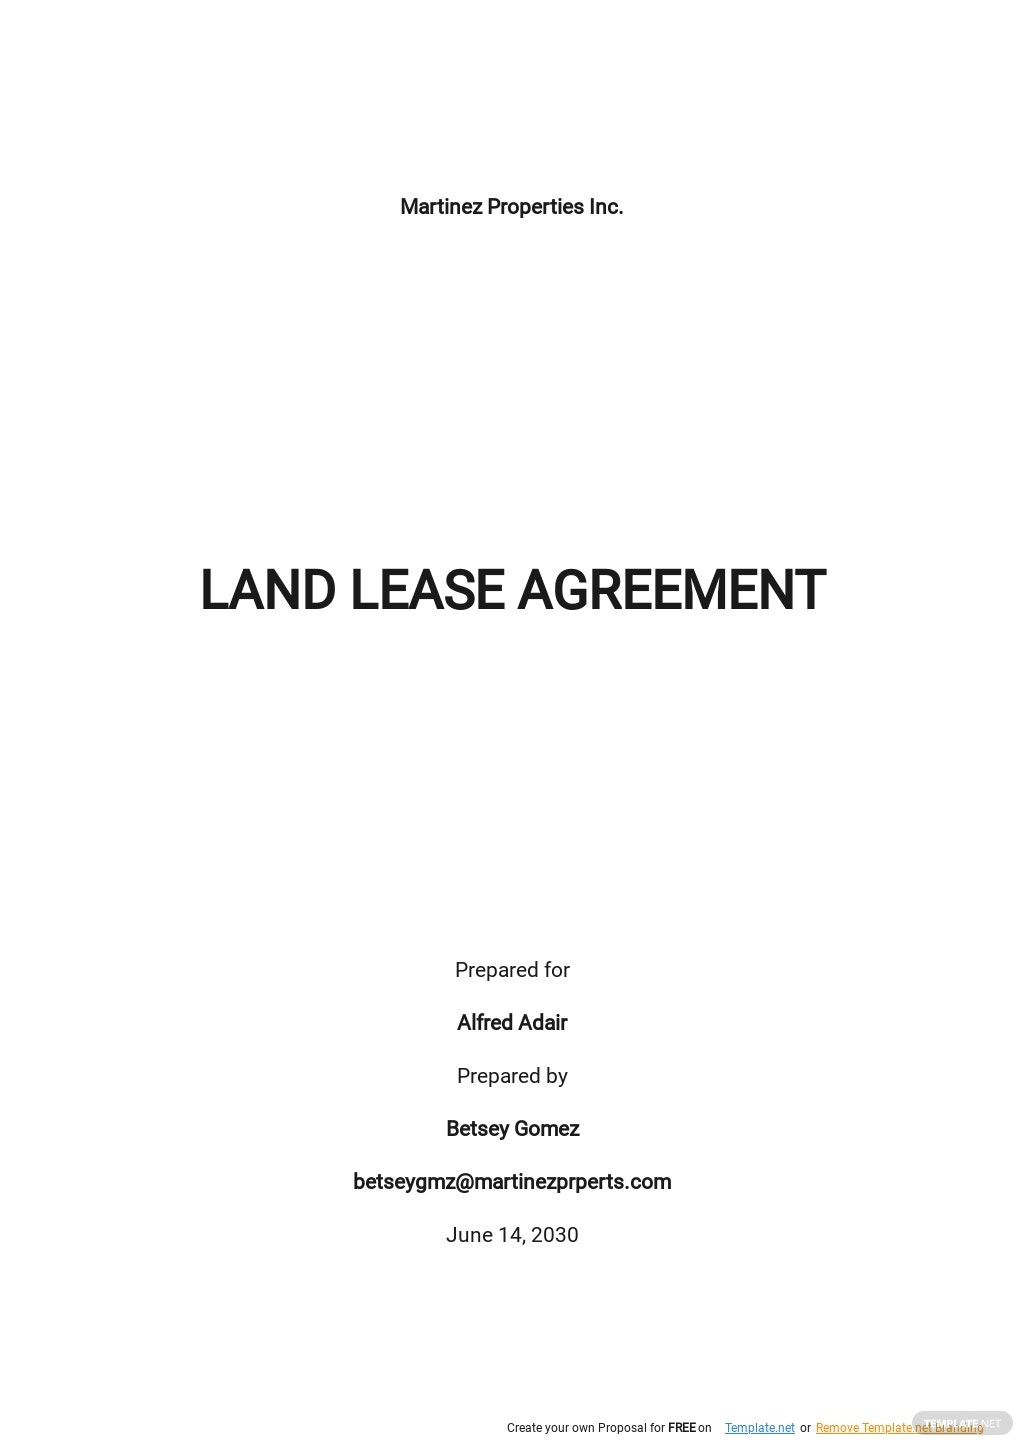 Sample Land Lease Agreement Template.jpe